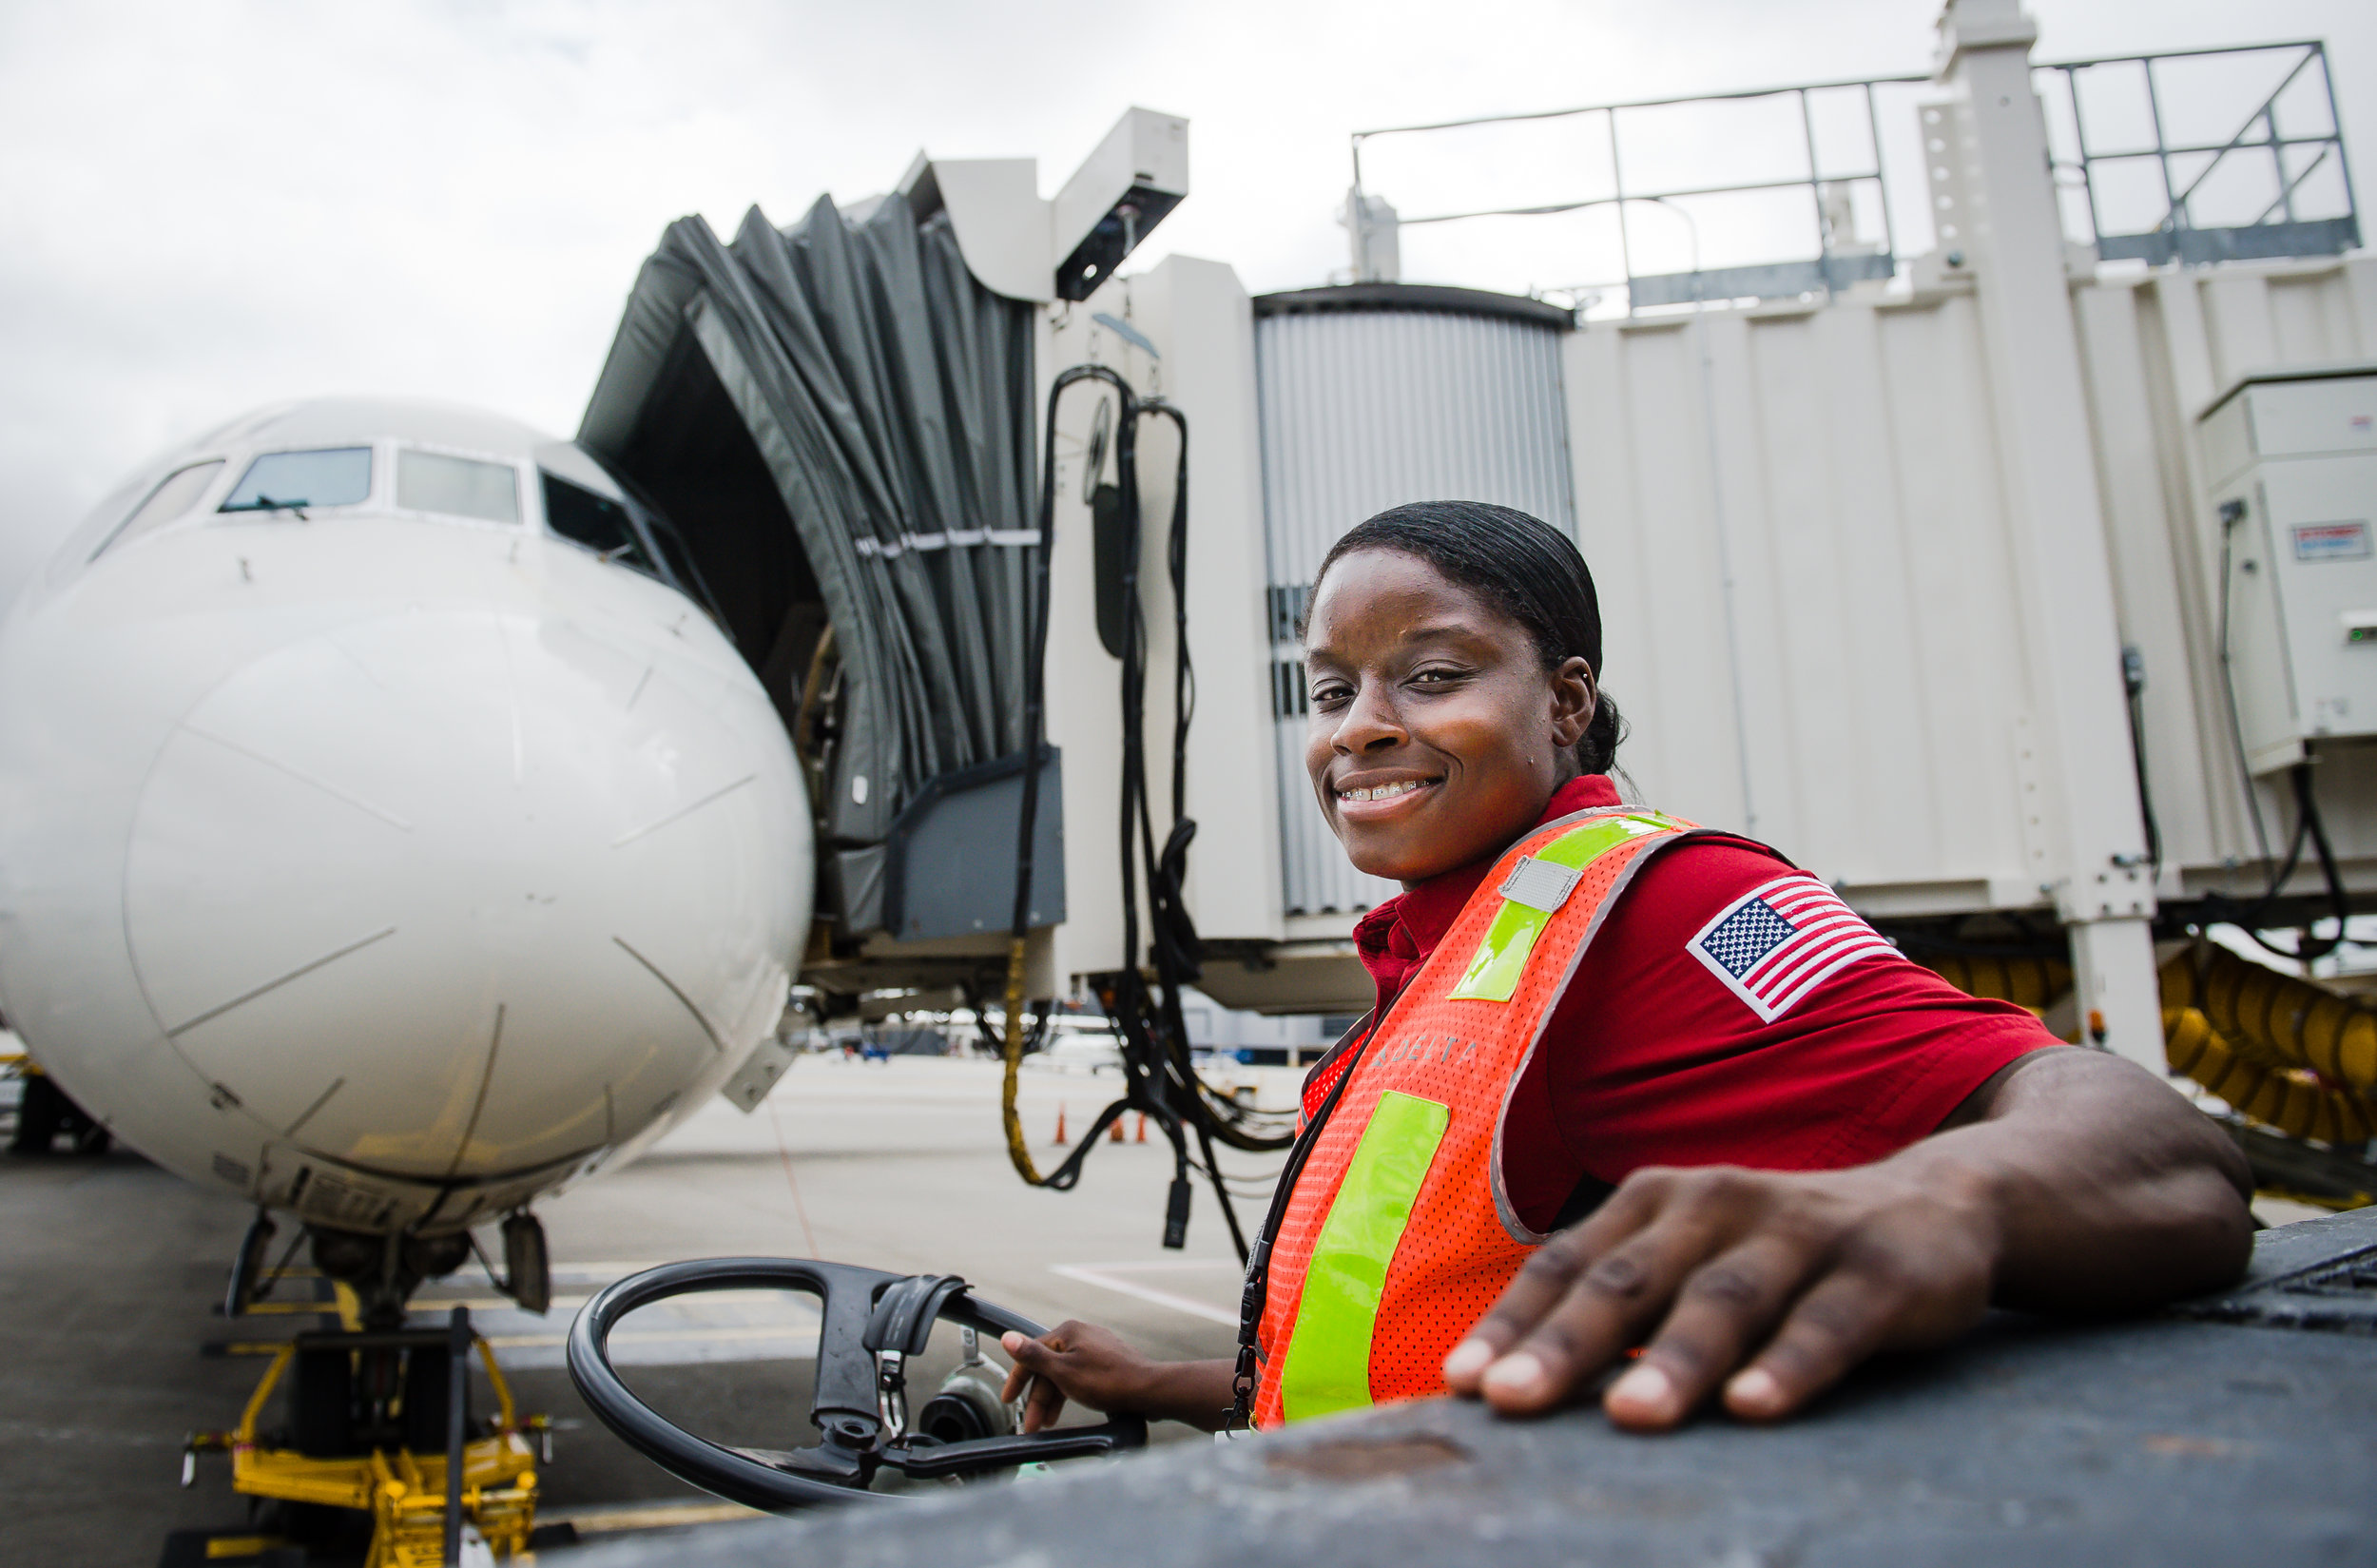 Charlessa Brightwell, a Delta Airlines Aircraft Load Agent, poses for a photo after connecting a pushback tug to the aircraft shown in preparation for takeoff at Hartsfield Jackson Atlanta International Airport Friday, 28 Sept. 2018.